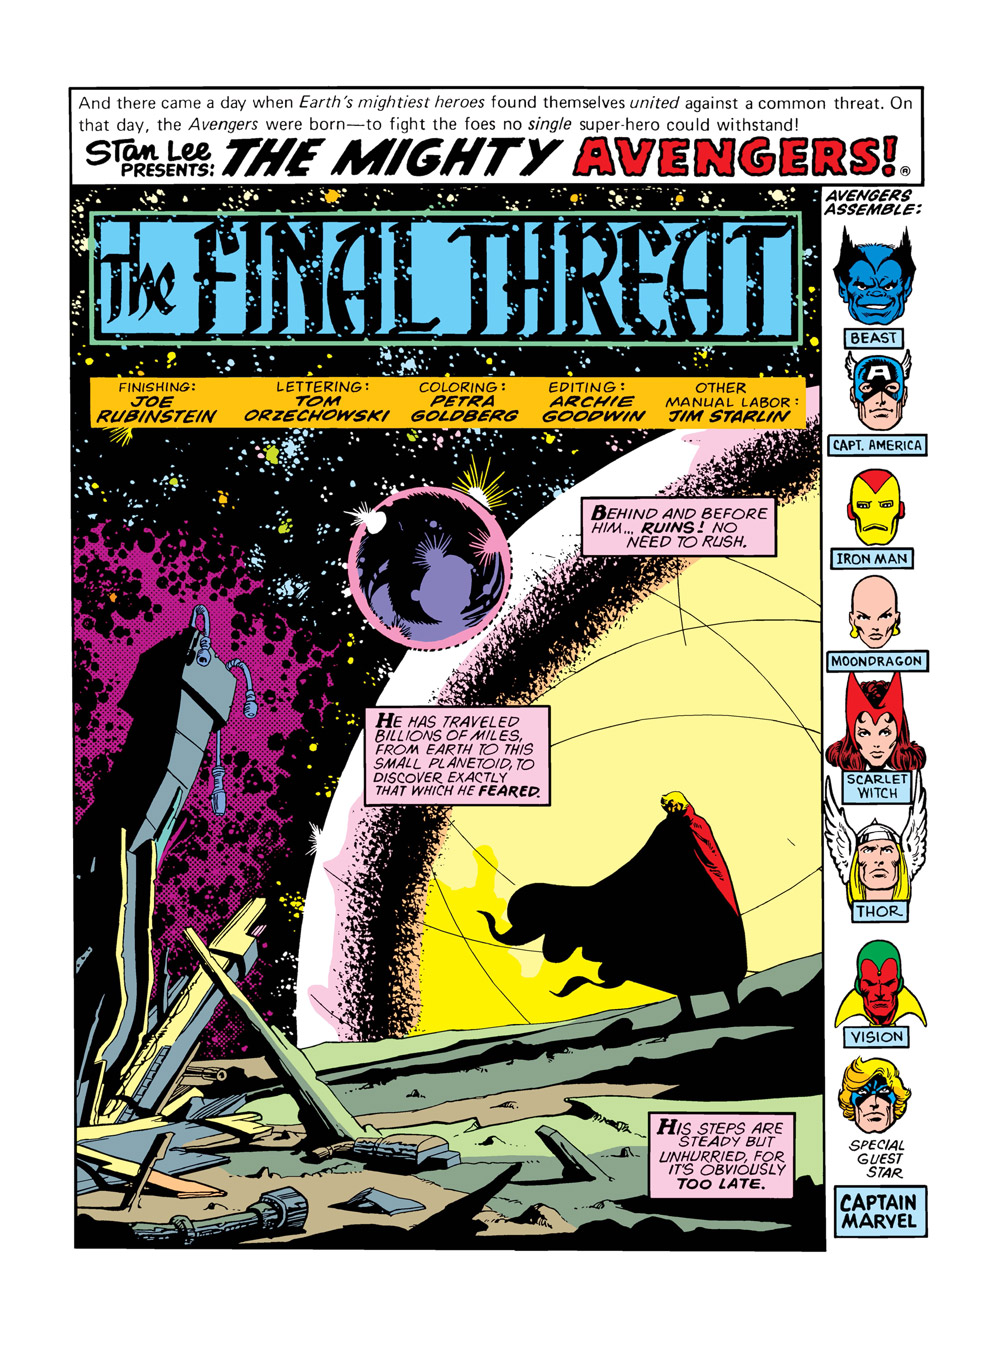 10_The-Avengers-Annual7_001 ComicList Previews: MARVEL COMICS DIGEST #6 (AVENGERS VS THANOS)